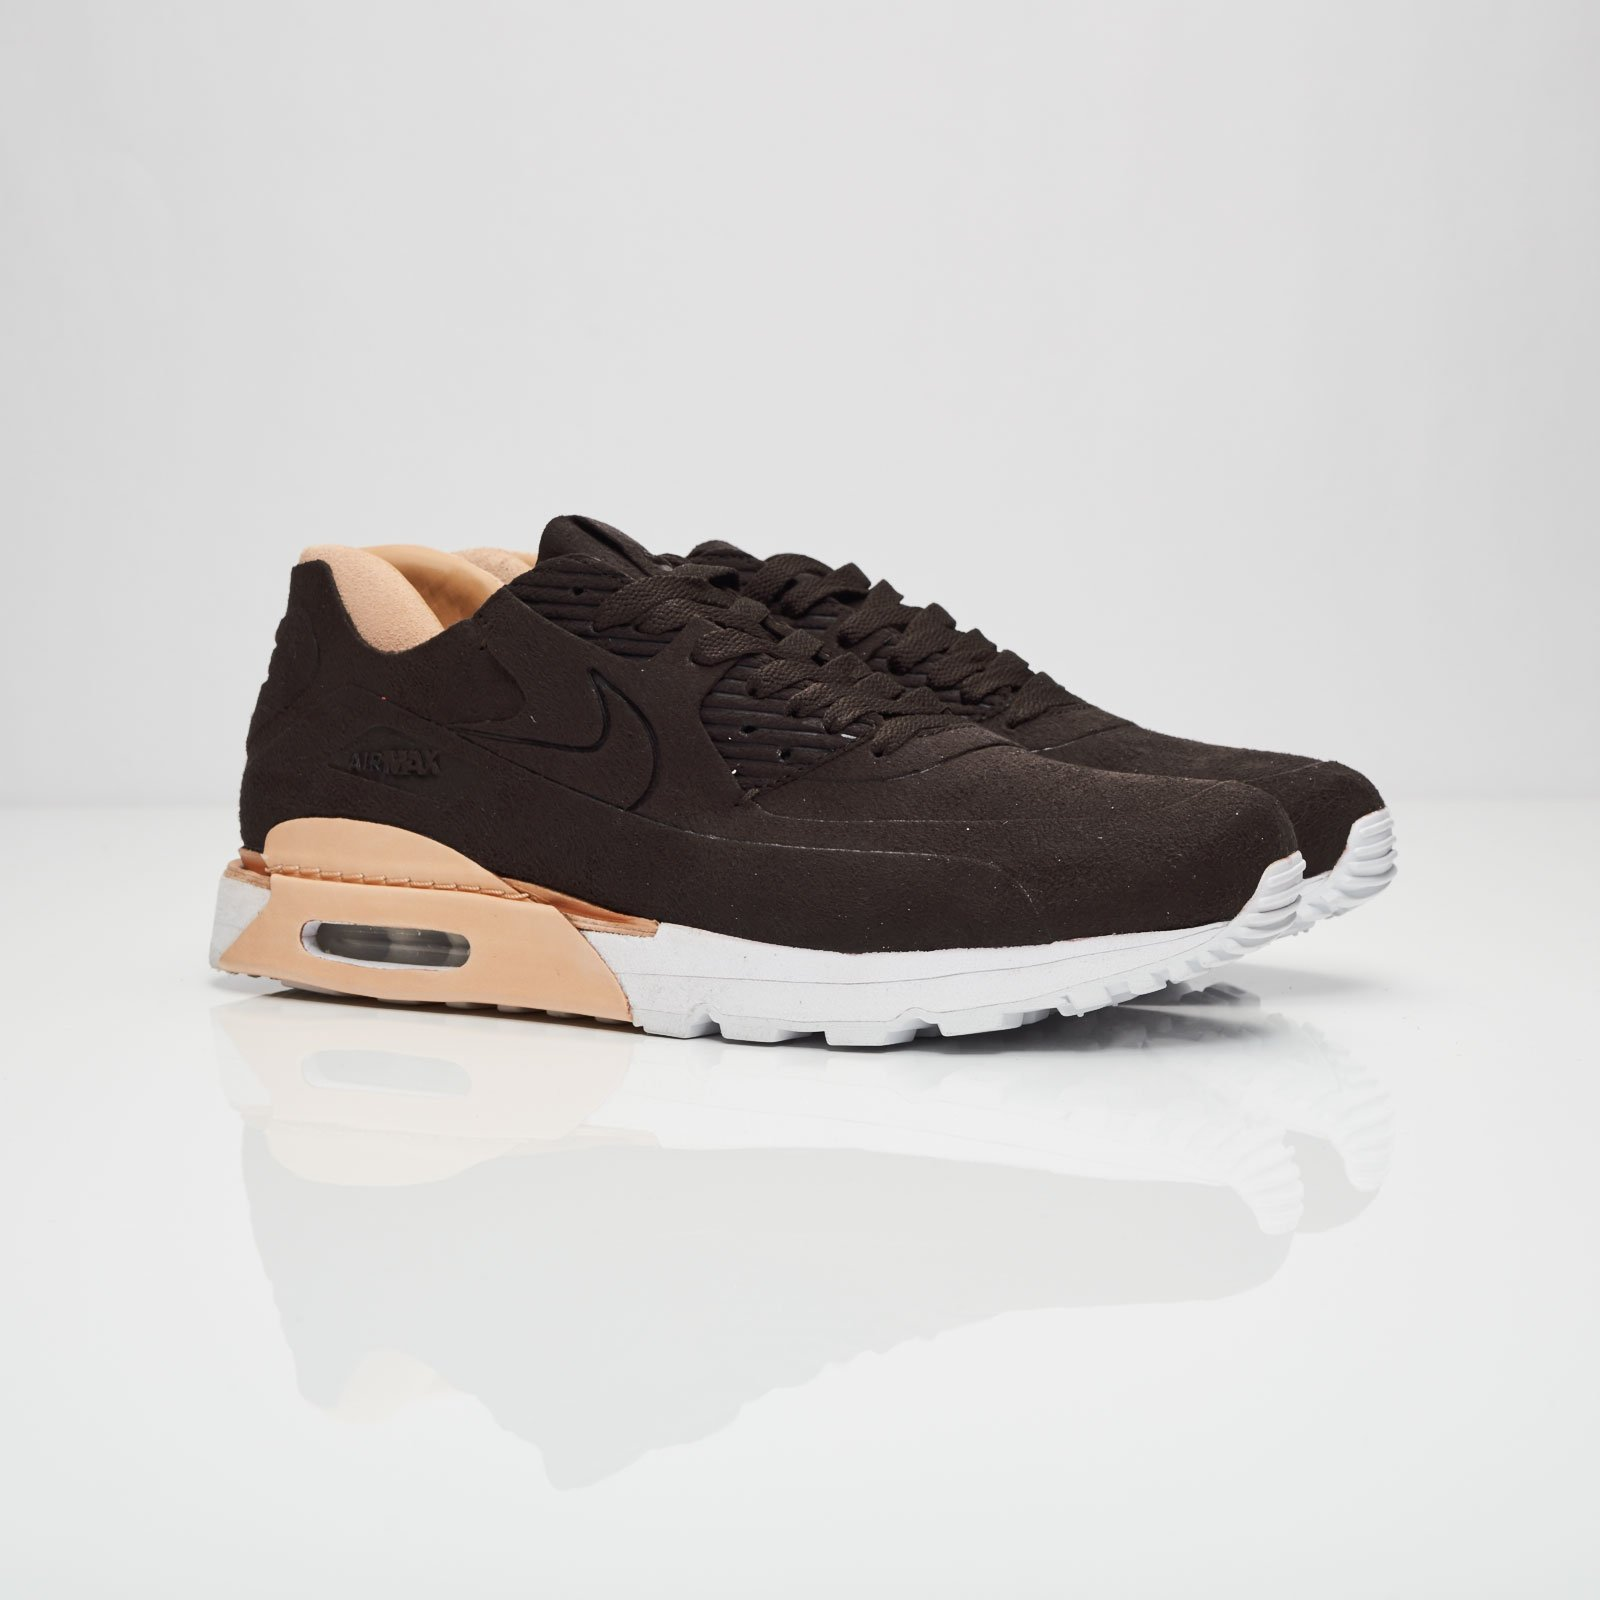 6c300dd351 Nike Air Max 90 Royal - 885891-200 - Sneakersnstuff | sneakers ...